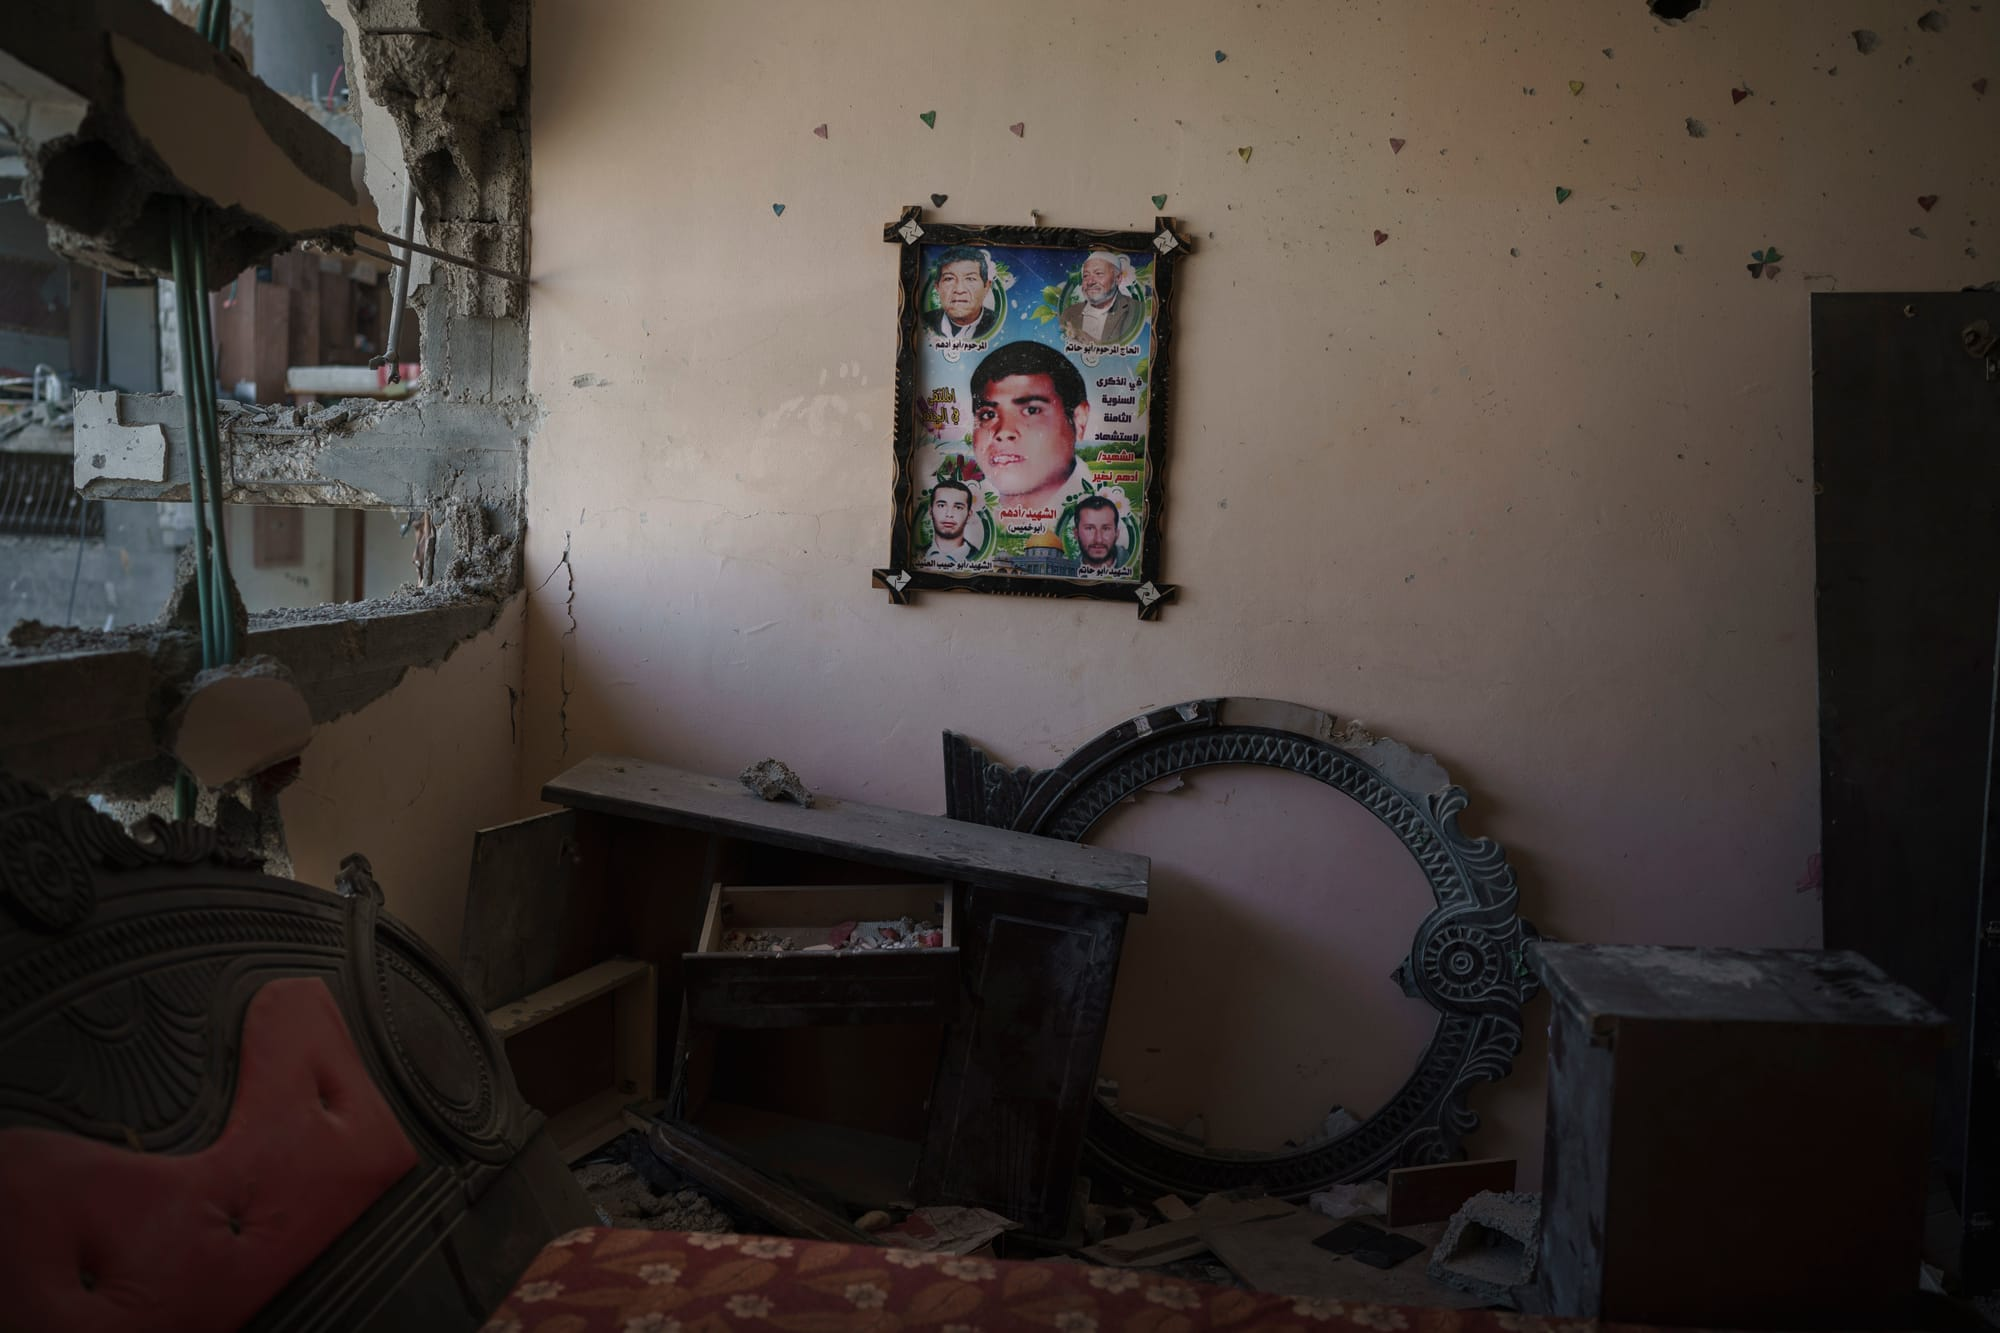 A poster with a photo of a man who died in the 2008 war hangs on the wall of his widow's house.